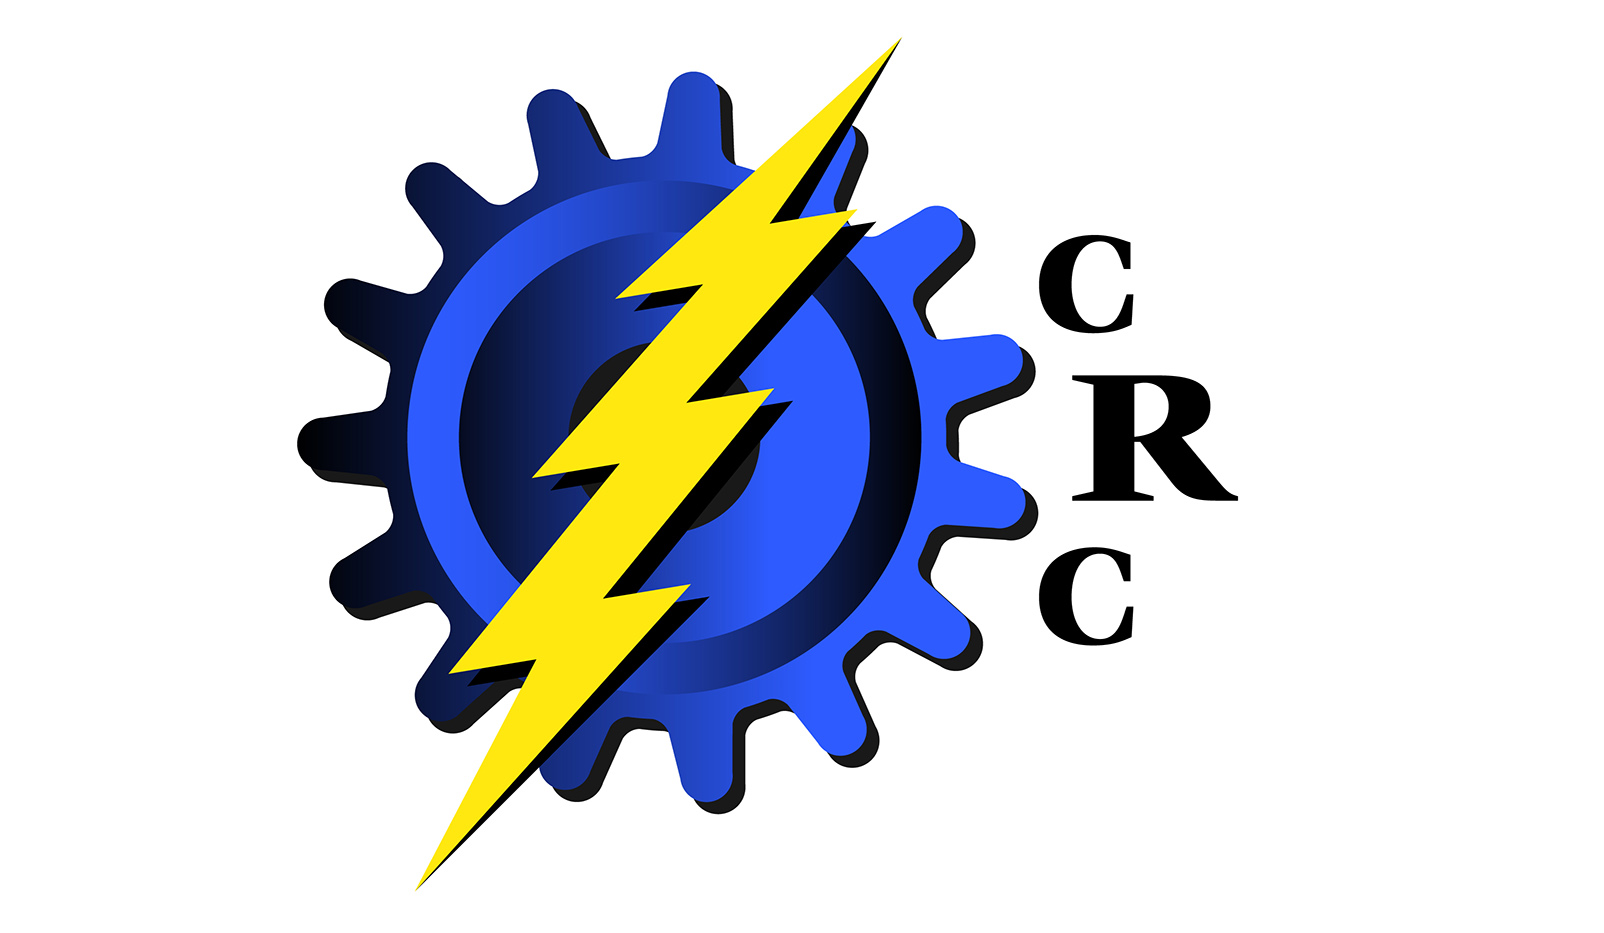 Full logo with CRC letters and robotics